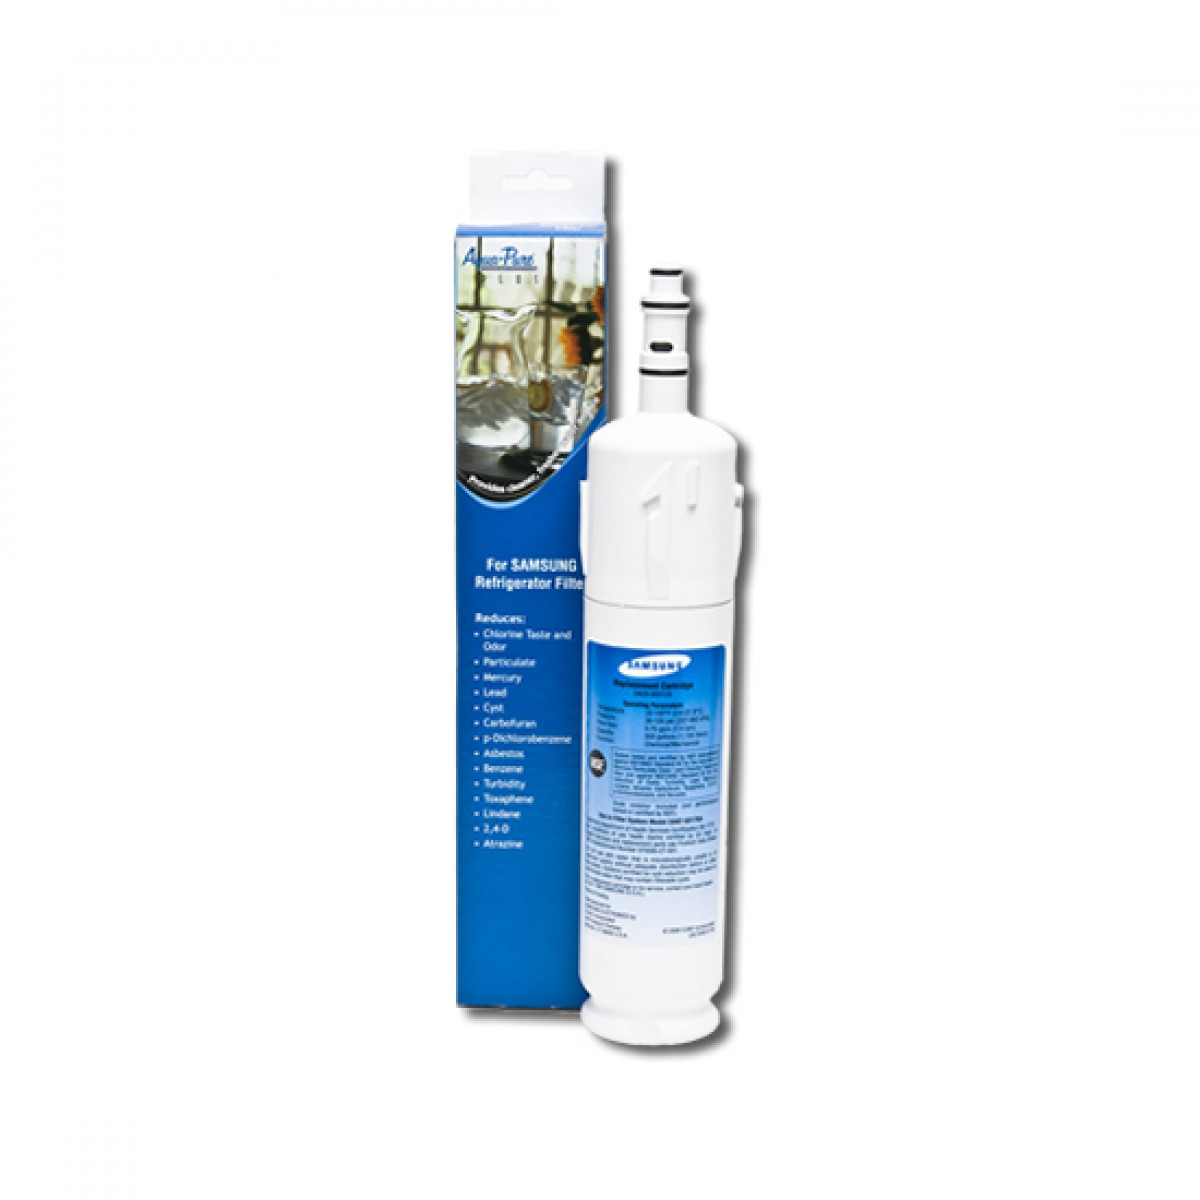 Fridge Filters Samsung Refrigerator Water Filters Stay Pure